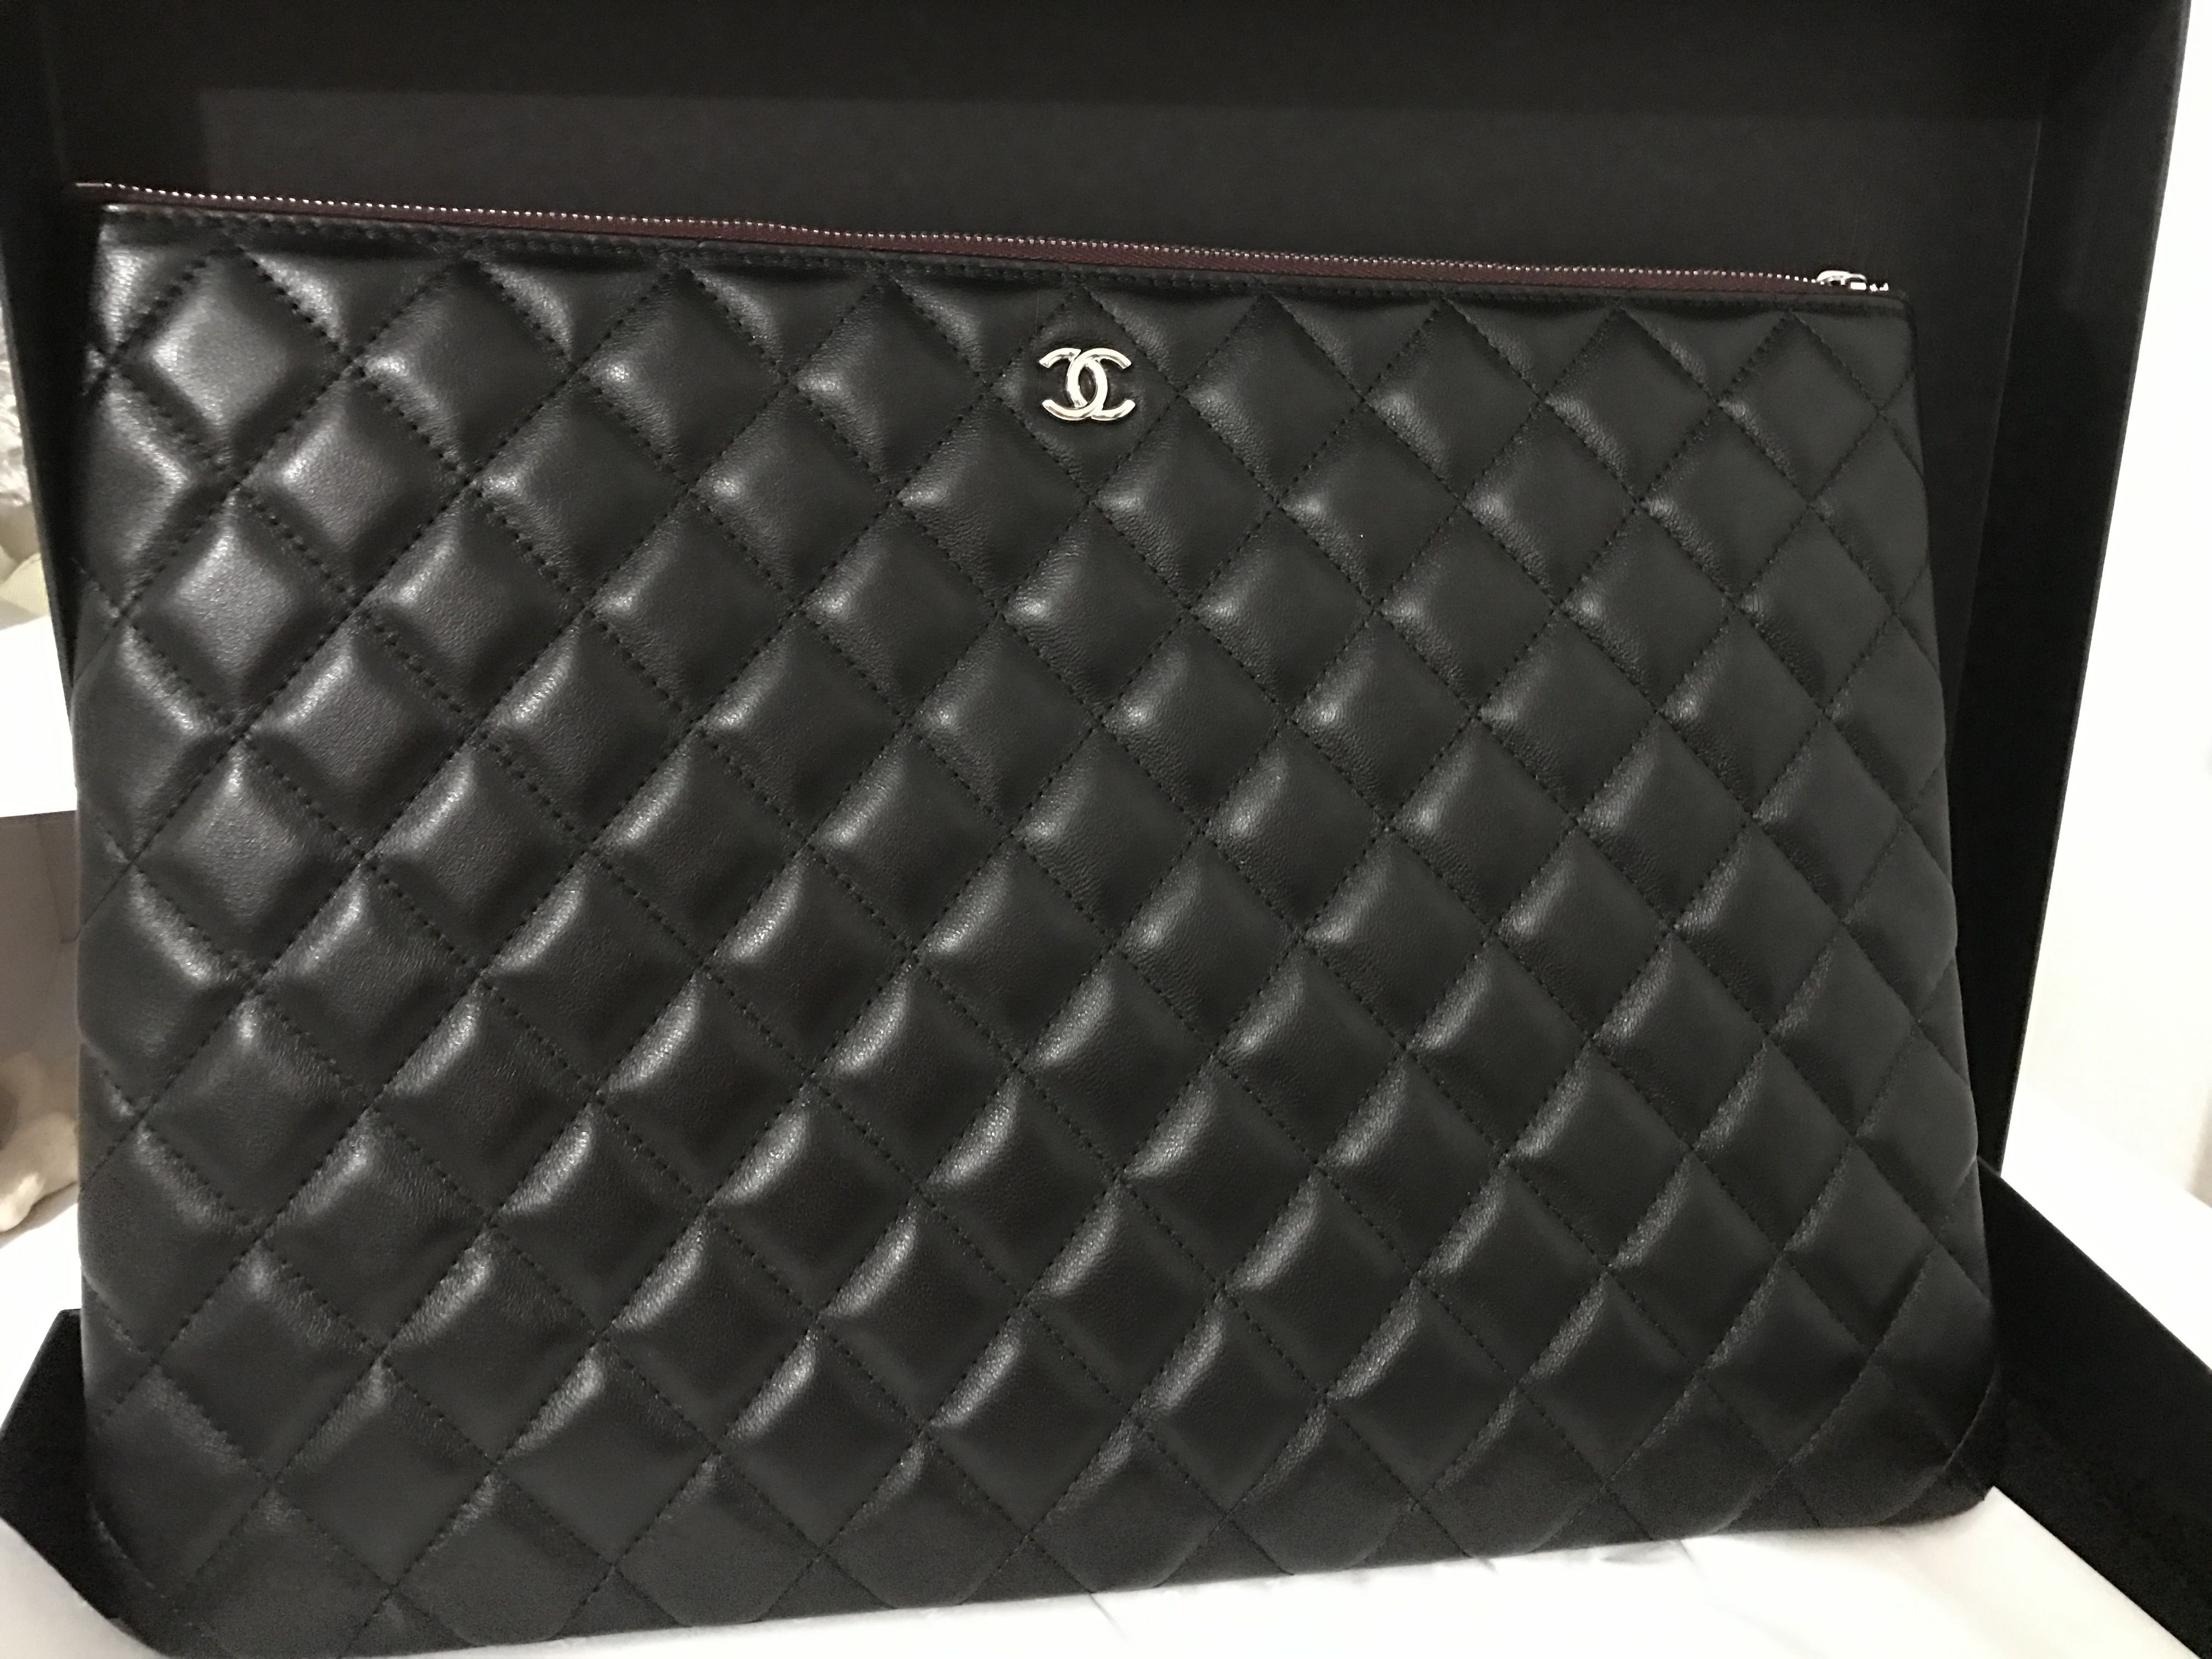 b90c9f245fdd7f Chanel, Chanel Clutch, Chanel Classic, Chanel Black Clutch, Clutch bag,  Pouch, Chanel O Case, Chanel Caviar, Chanel Lamb Skin Clutch.